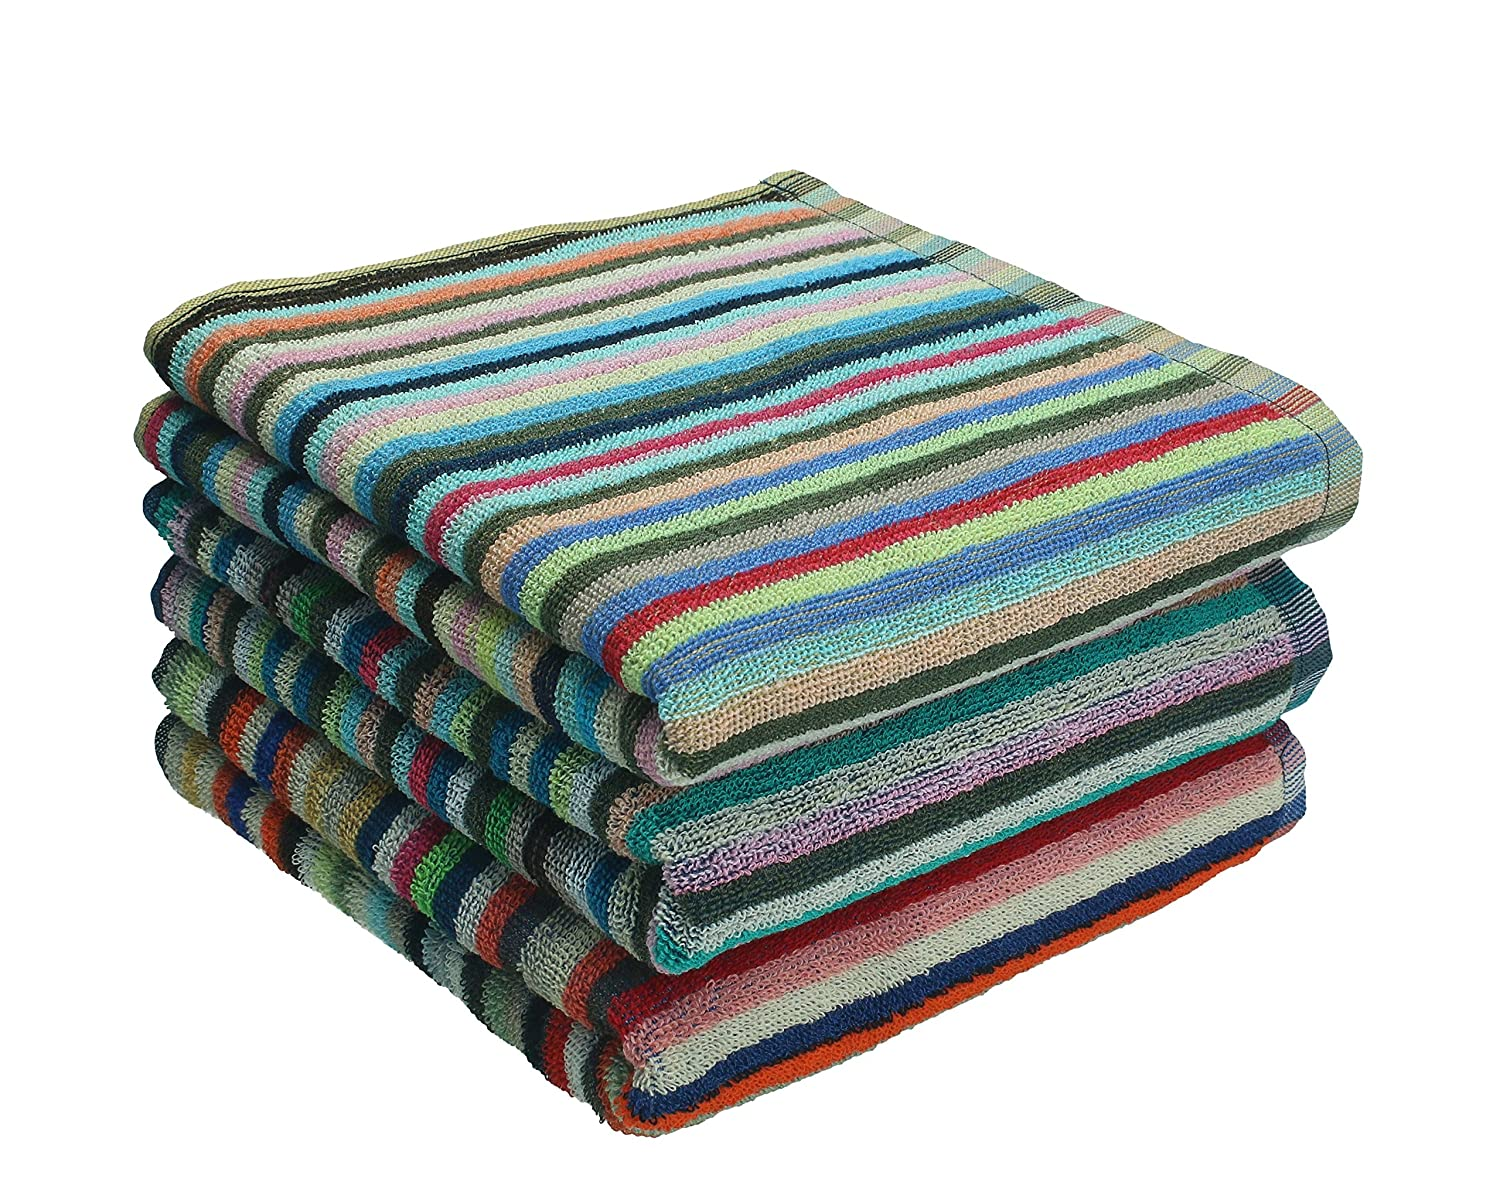 Betz 3 Piece Towel Set Striped Work Towel Kitchen Towel Size 50x90 cm